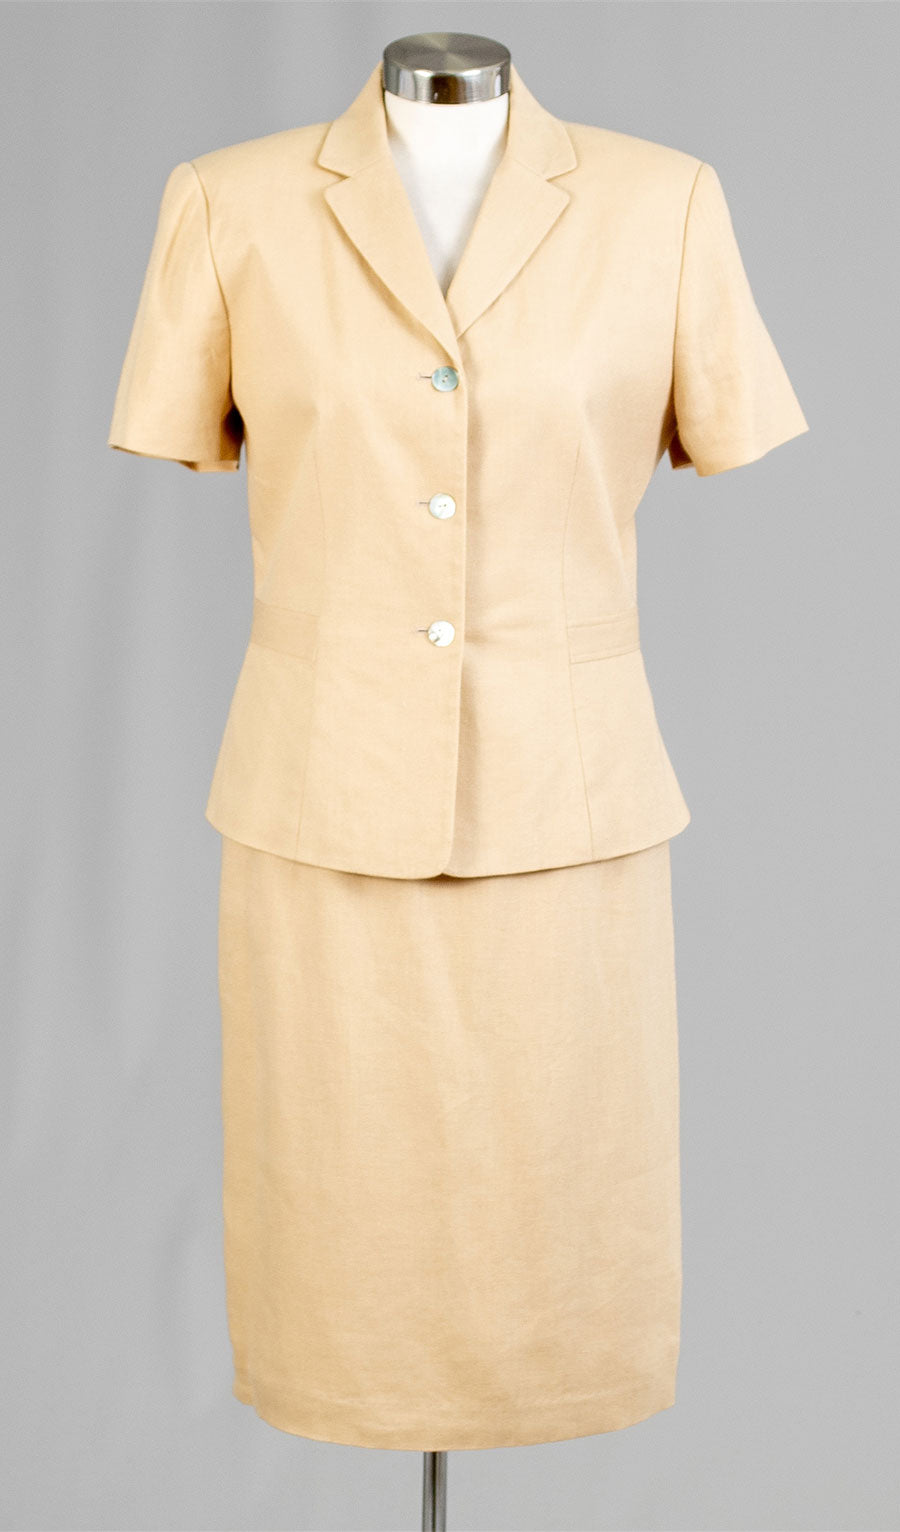 Women Business Skirt Suit 90352 - Church Suits For Less